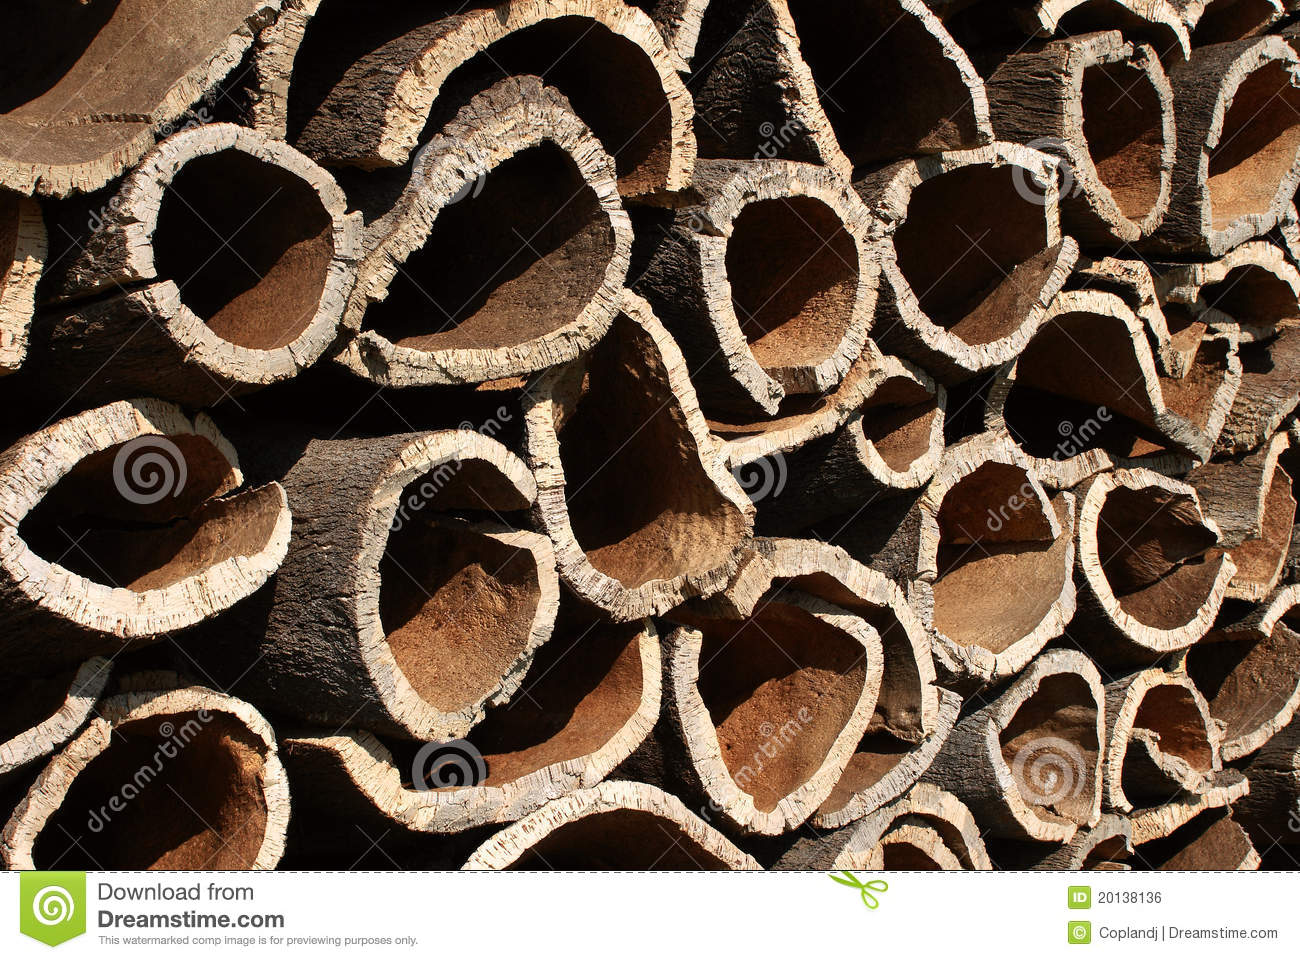 Cork Oak Bark Royalty Free Stock Image.